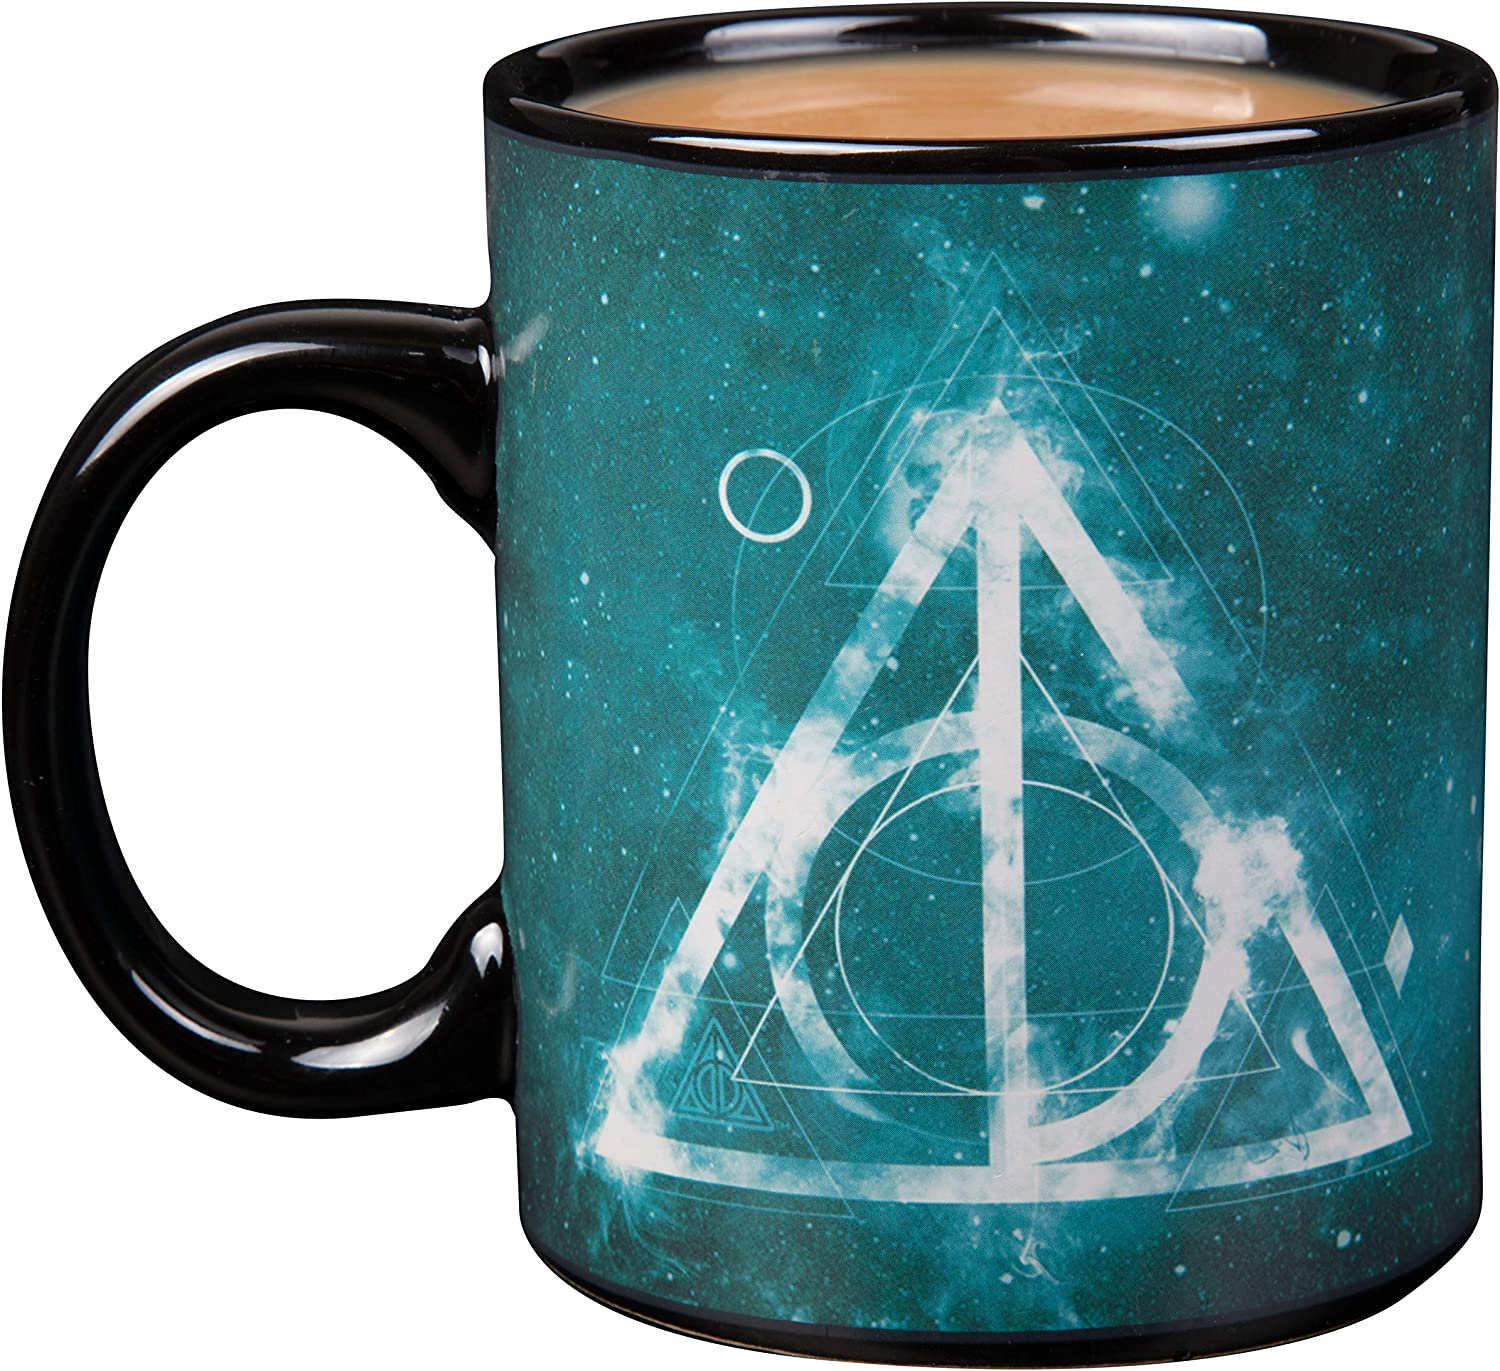 Harry Potter Heat Reveal Ceramic Coffee Mug - Activates with Heat (Deathly Hallows)